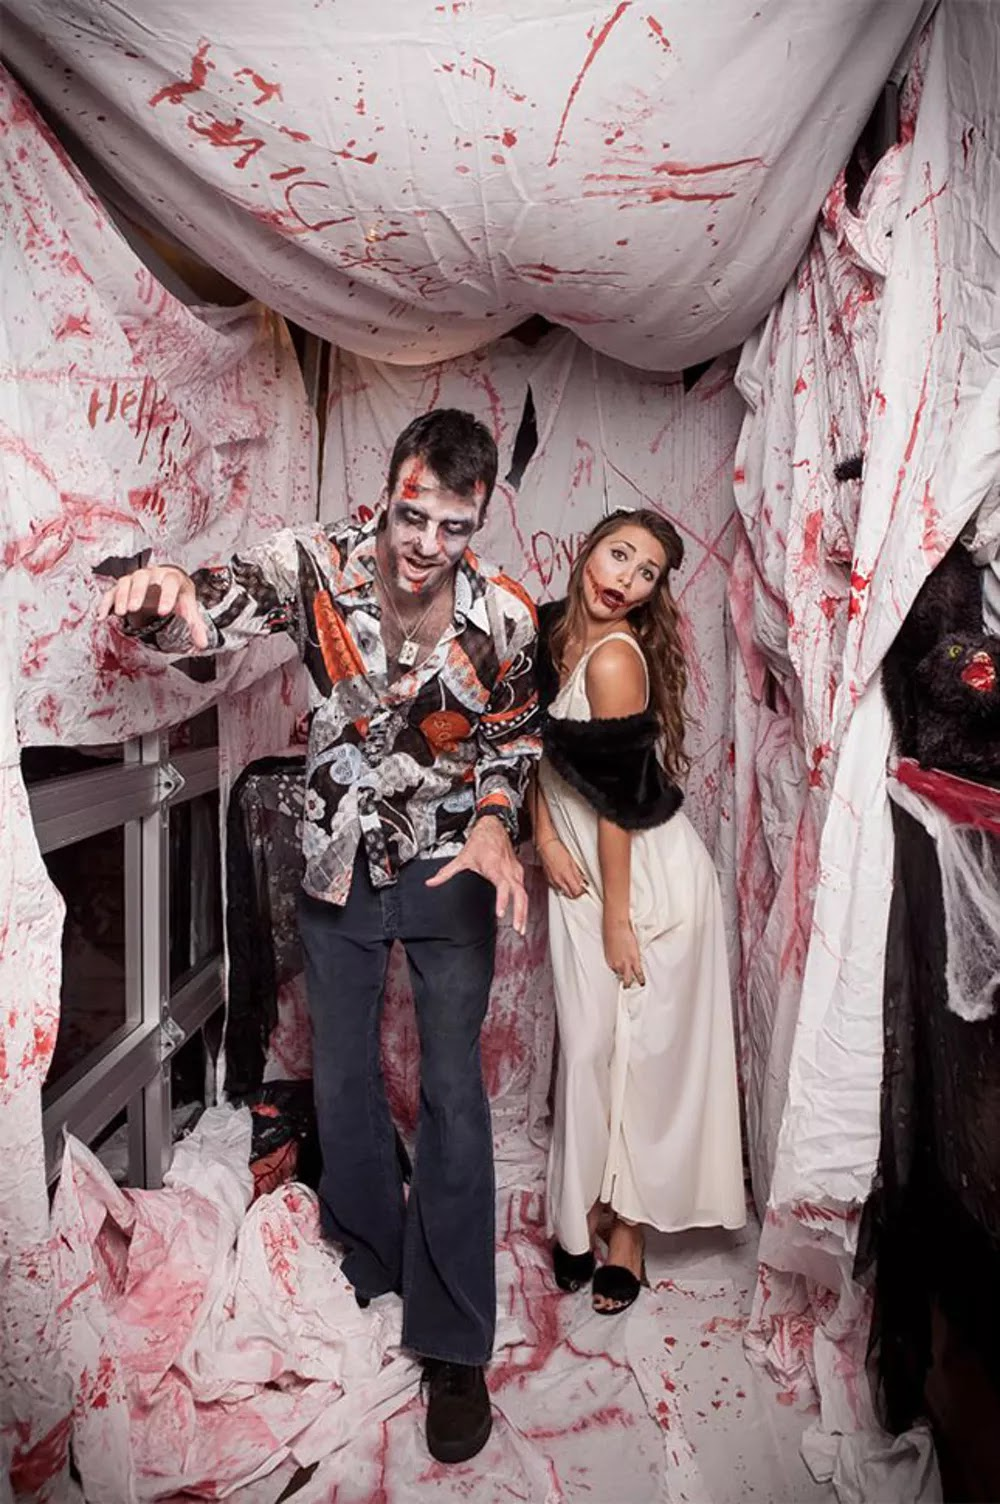 5 Halloween Photo Booths ideas Your Party Needs